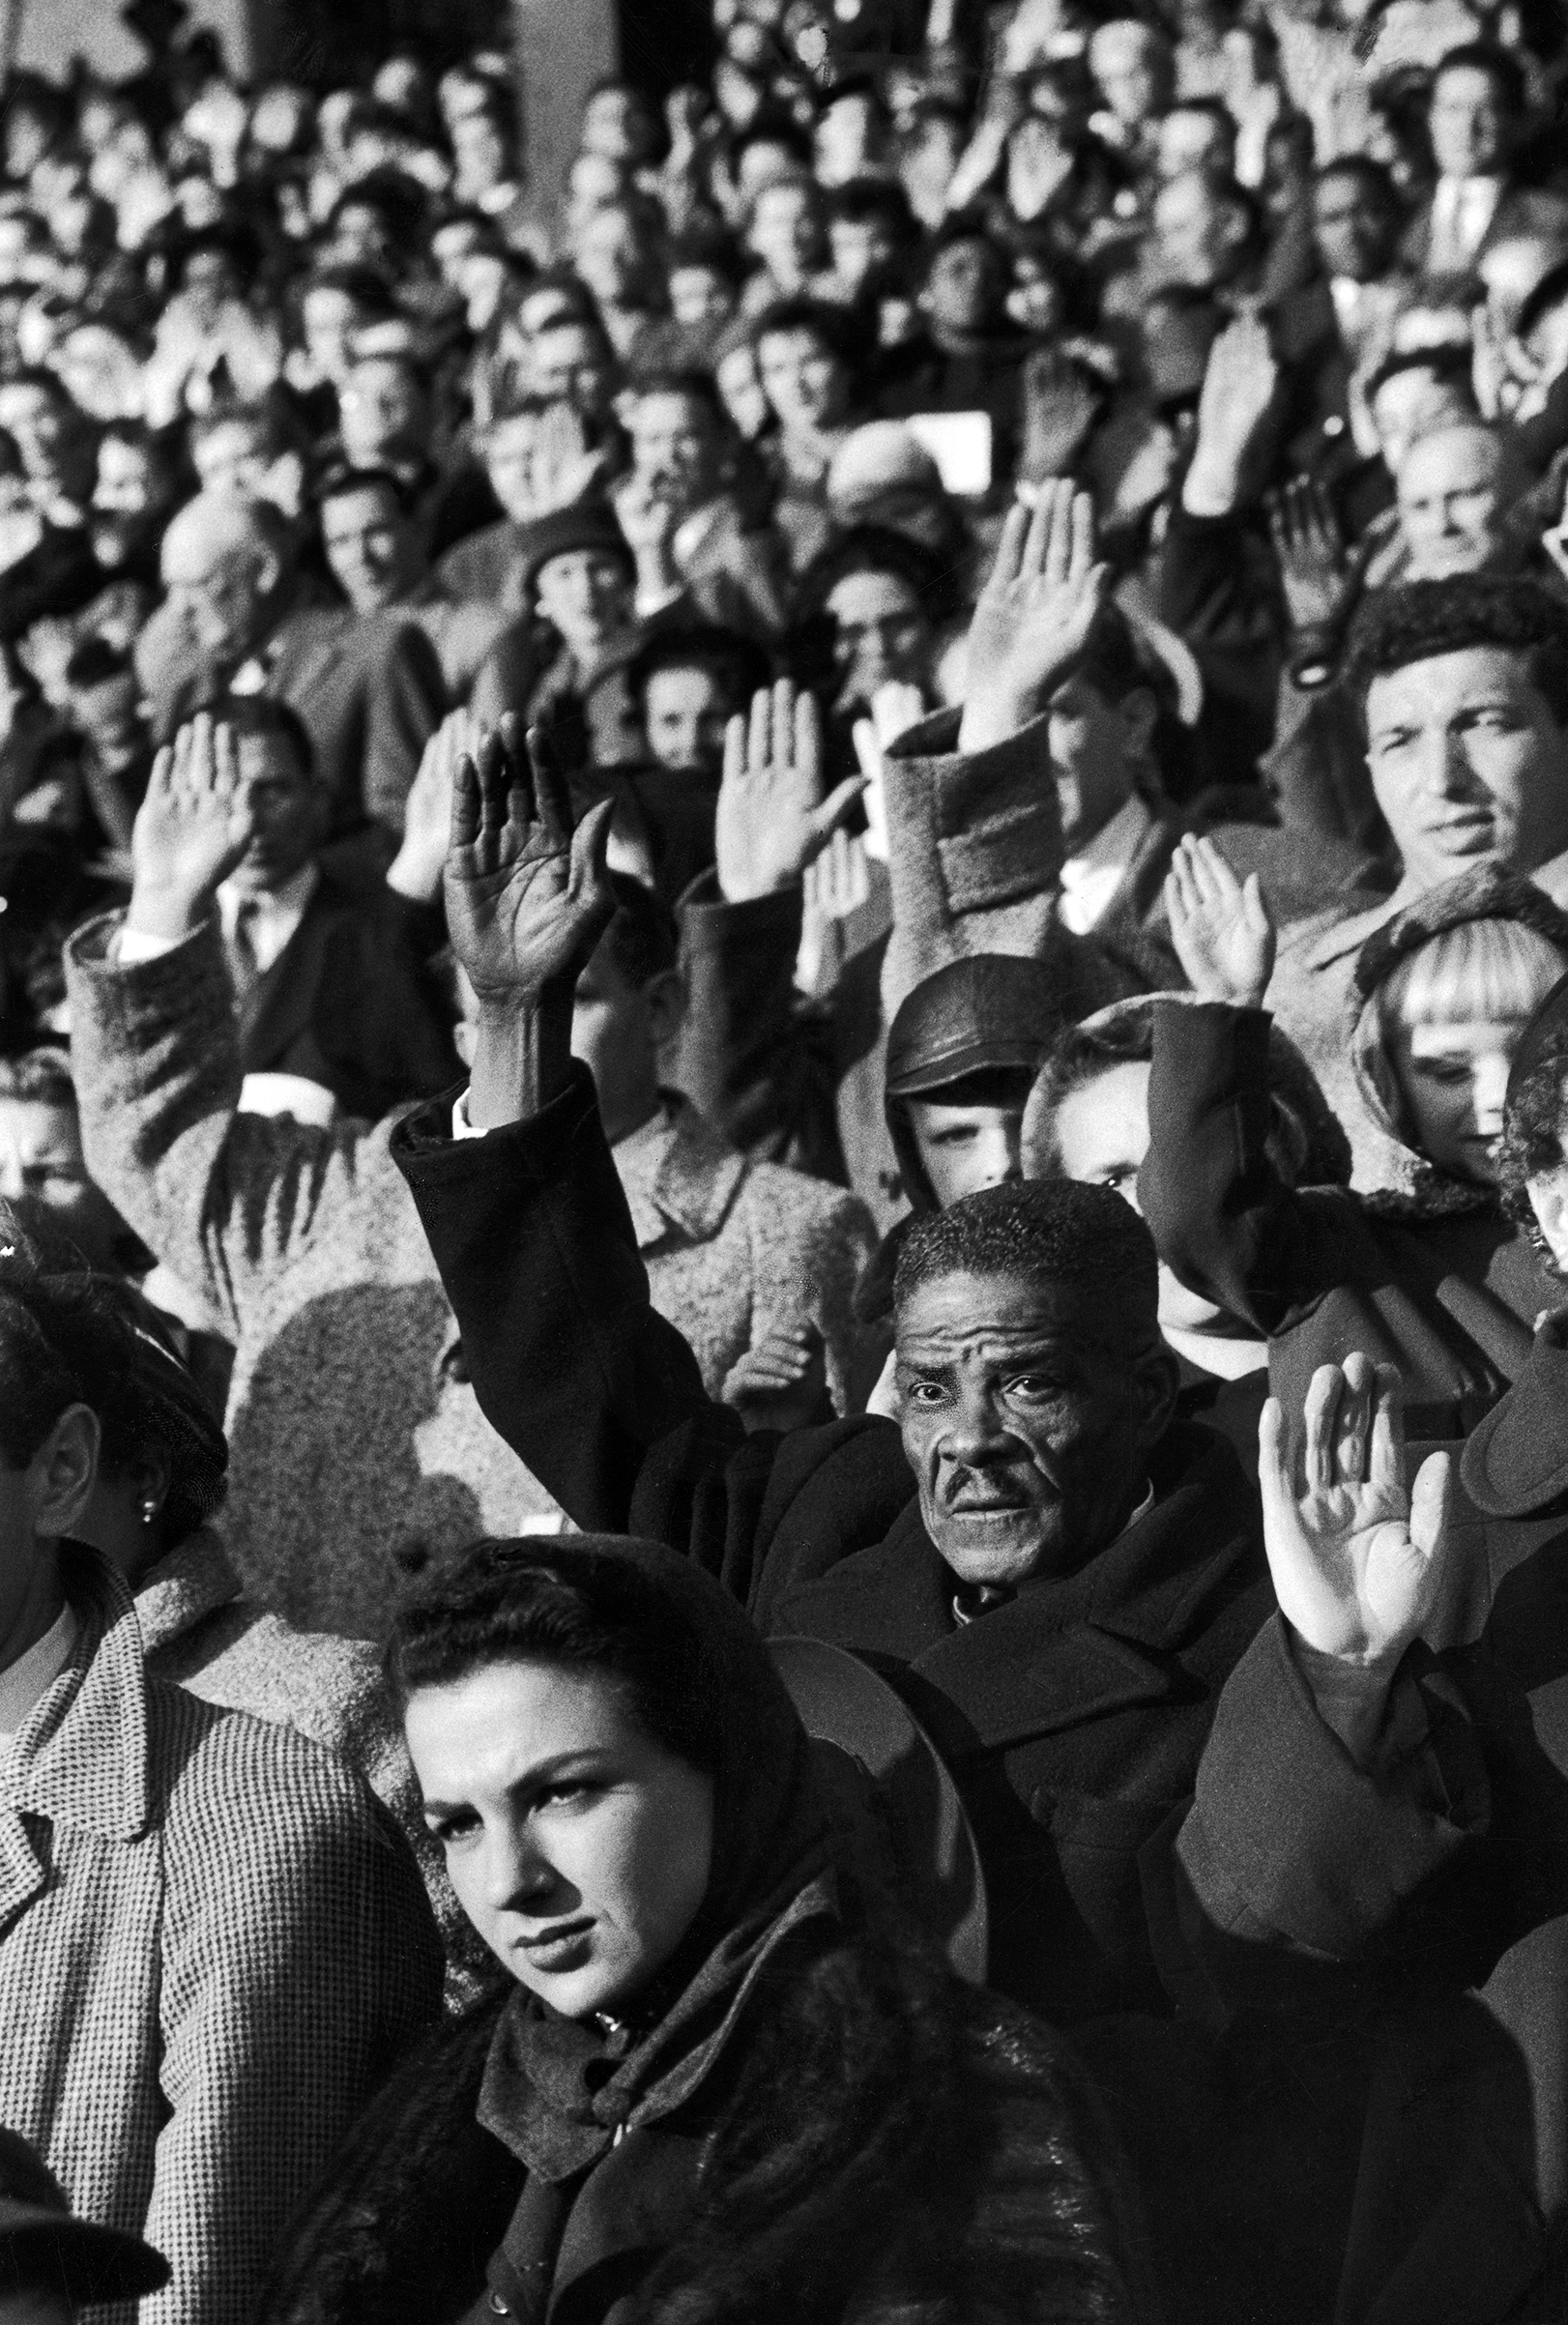 Caption from LIFE. In mass induction of 9,000 new citizens, men and women at New York's Polo Grounds raise their right hands to take oath of allegiance.